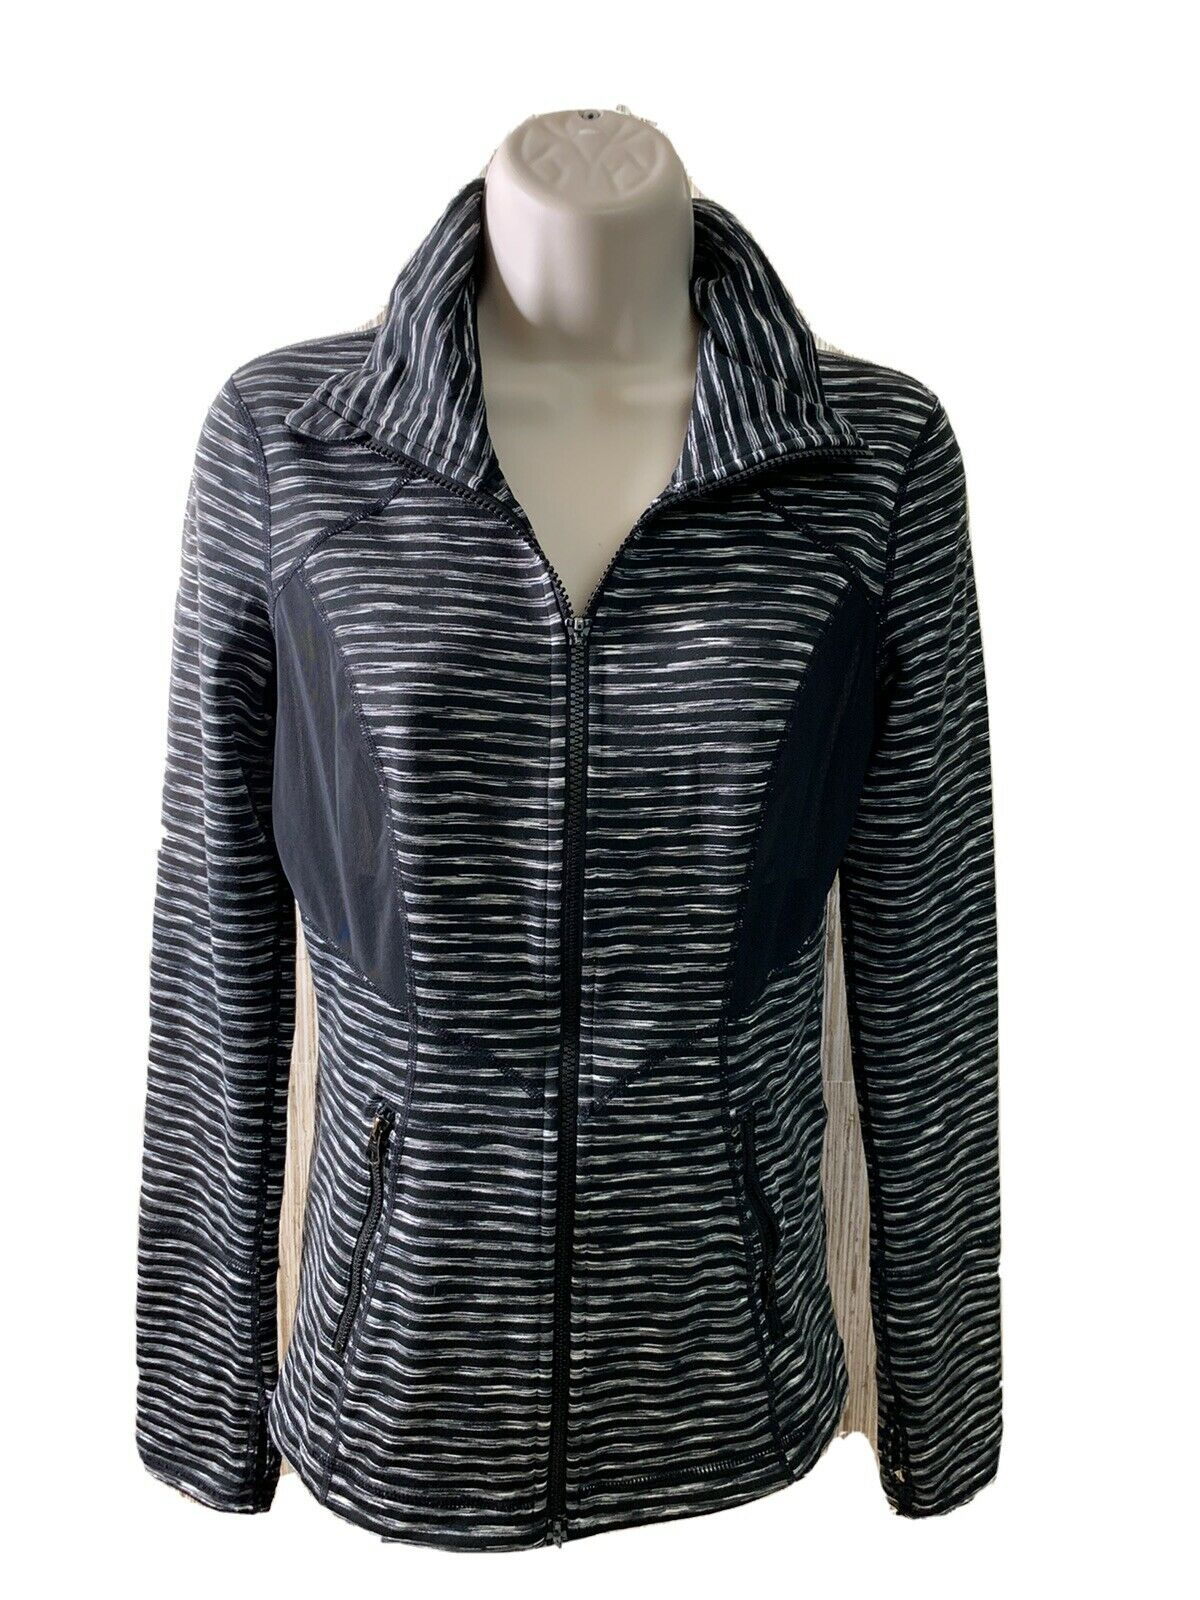 Zella Striped Mesh Black Pull-over 1/4 Zip Long Sleeve Athletic Top Size Small